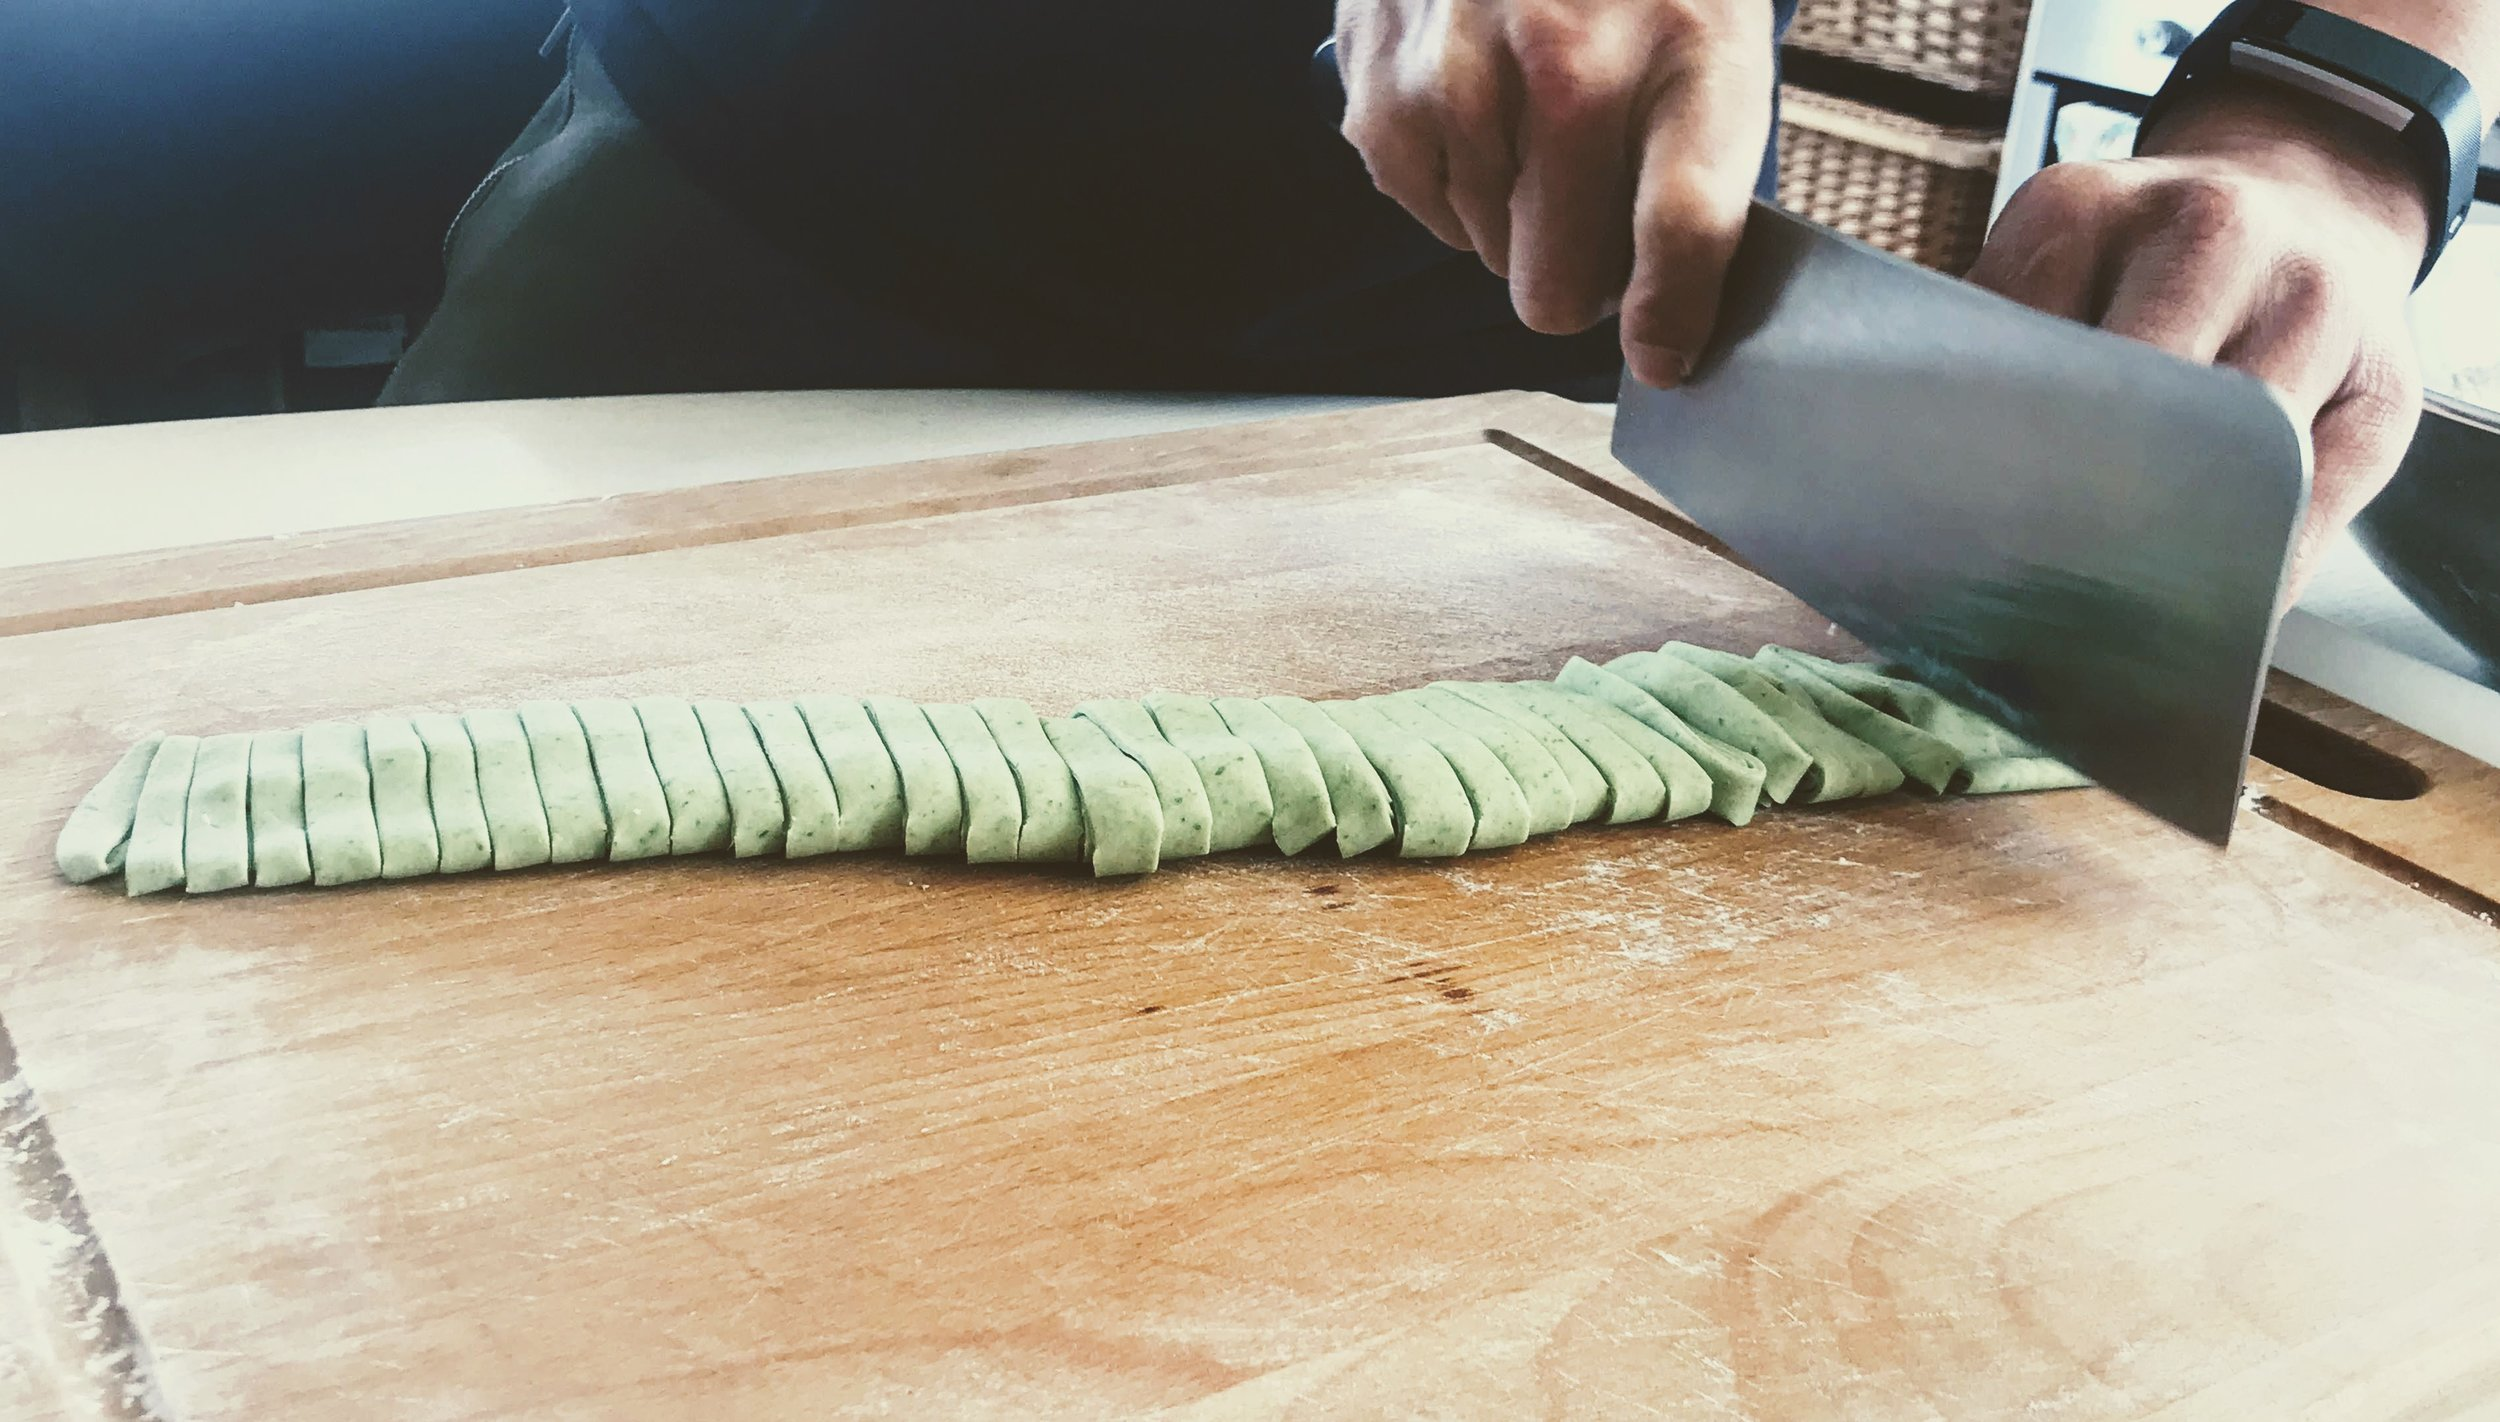 Home Made spinach Noodles - Shifu cutting up the Spinach Dough